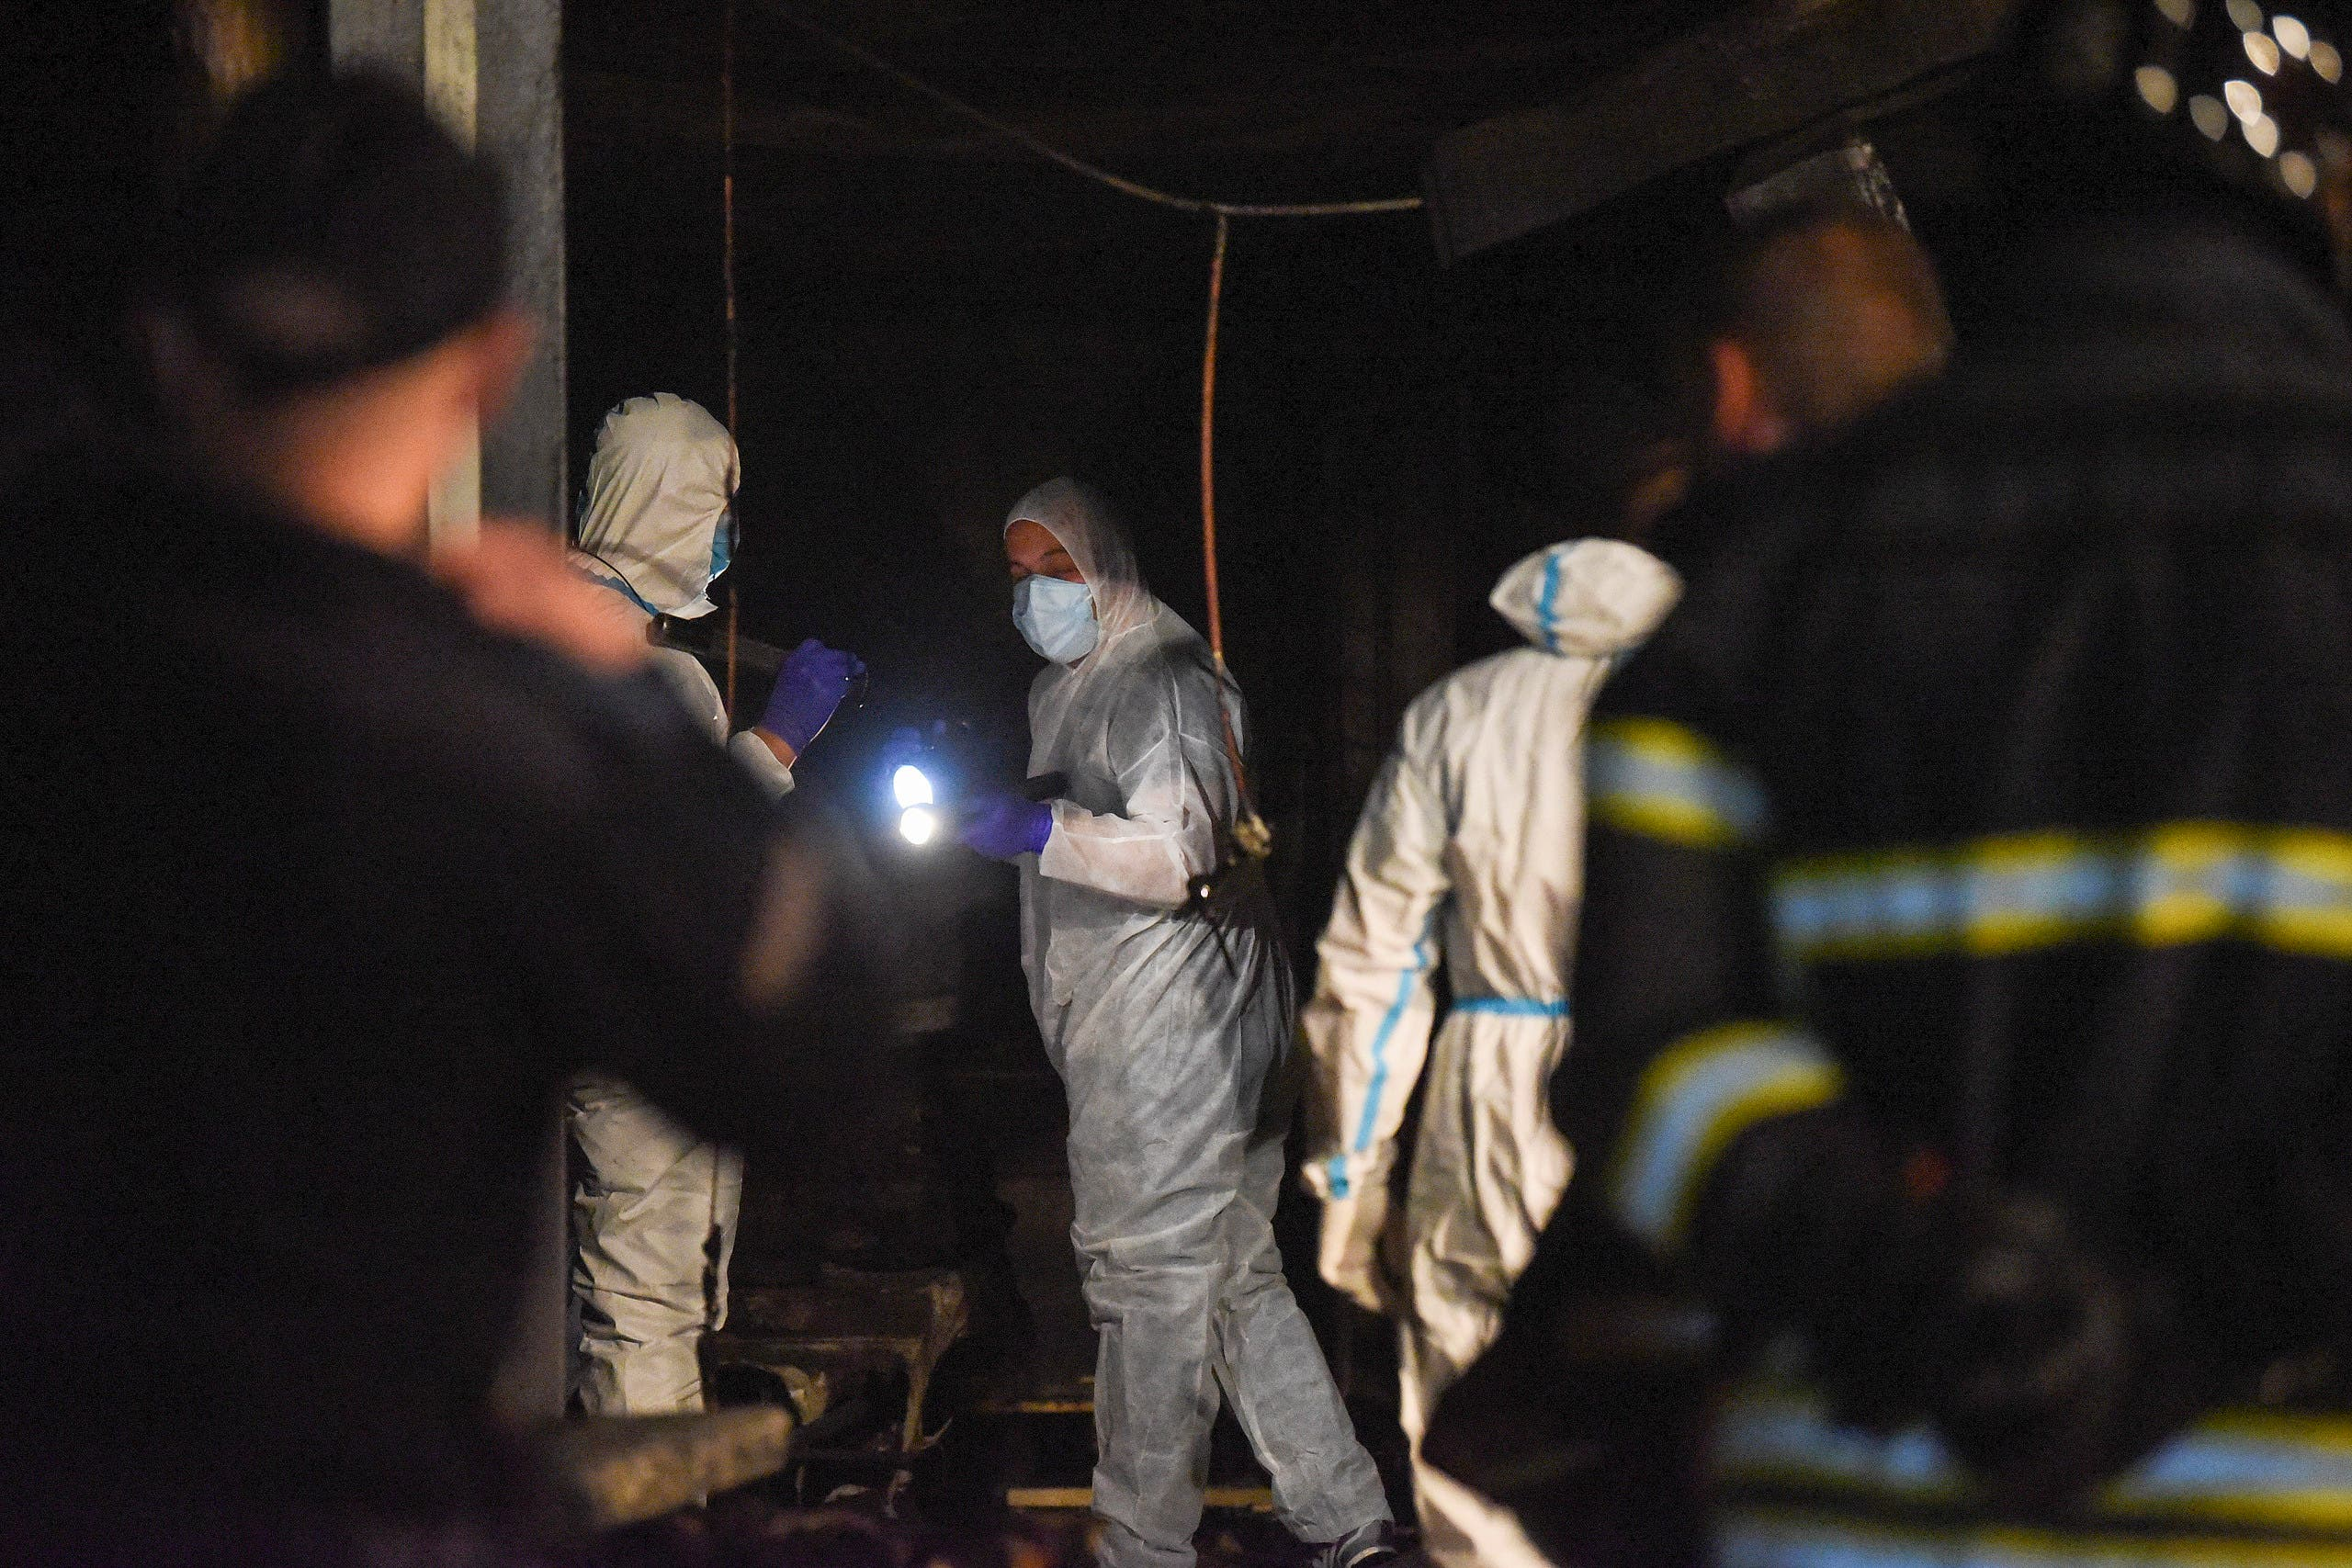 Police and firefighters inspect the scene at a COVID-19 clinic after a fire broke out, in Tetovo, North Macedonia on September 8, 2021. (AFP)